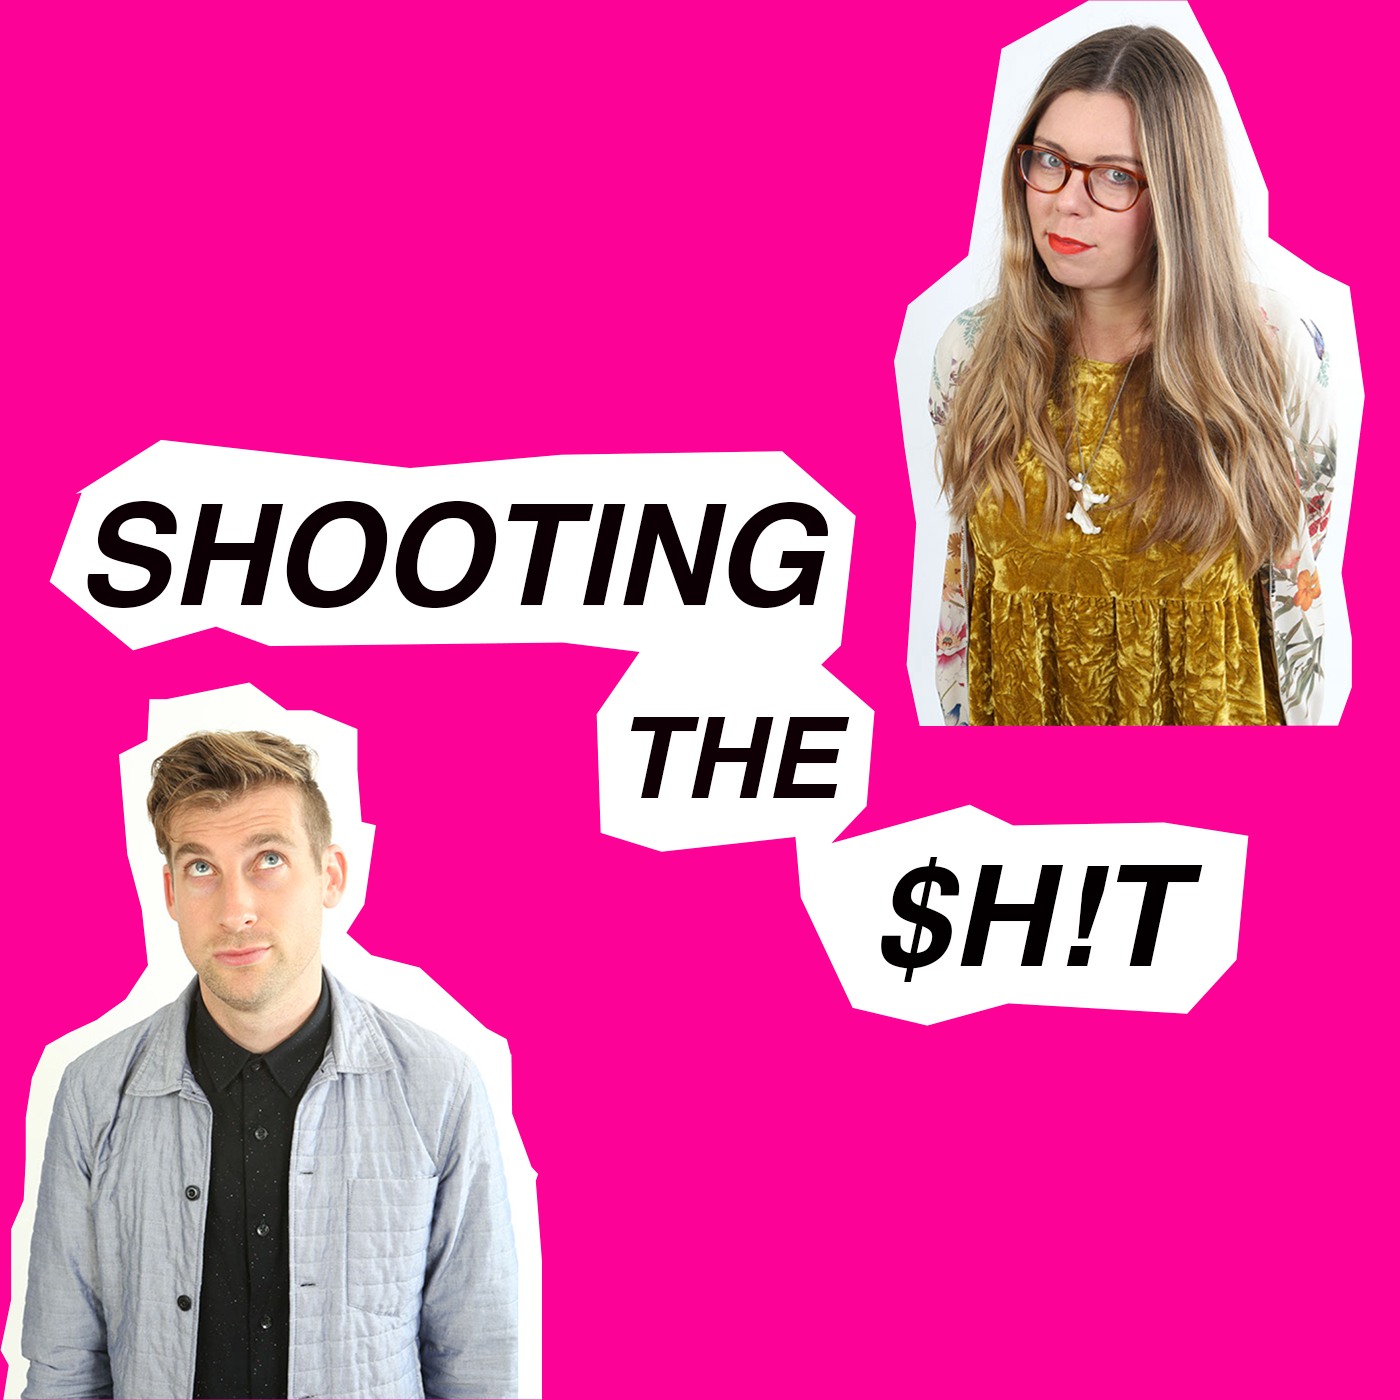 SHOOTING THE $H!T: Episode 1